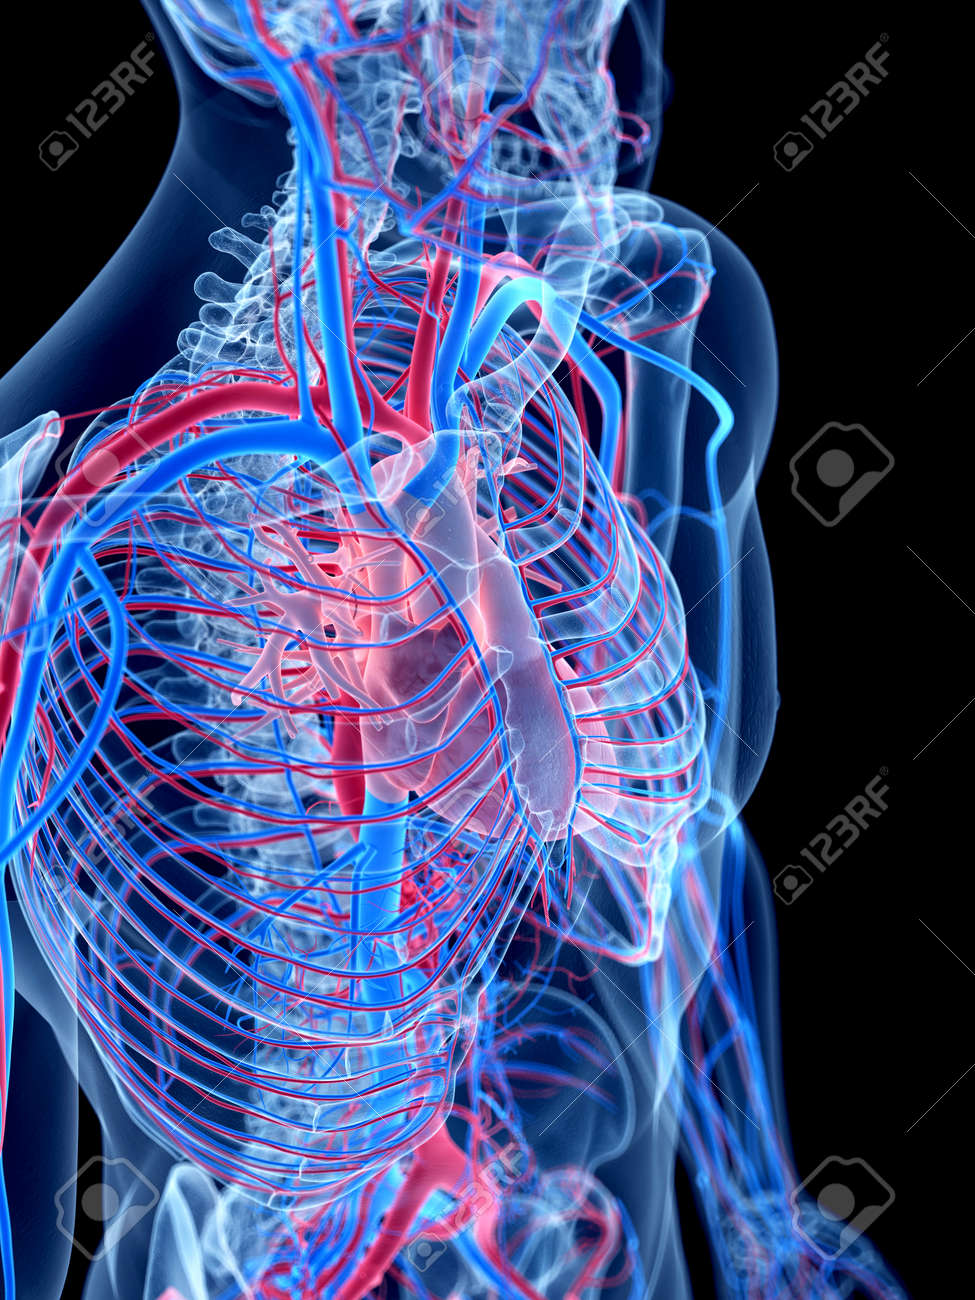 The Human Vascular System The Thorax Stock Photo Picture And